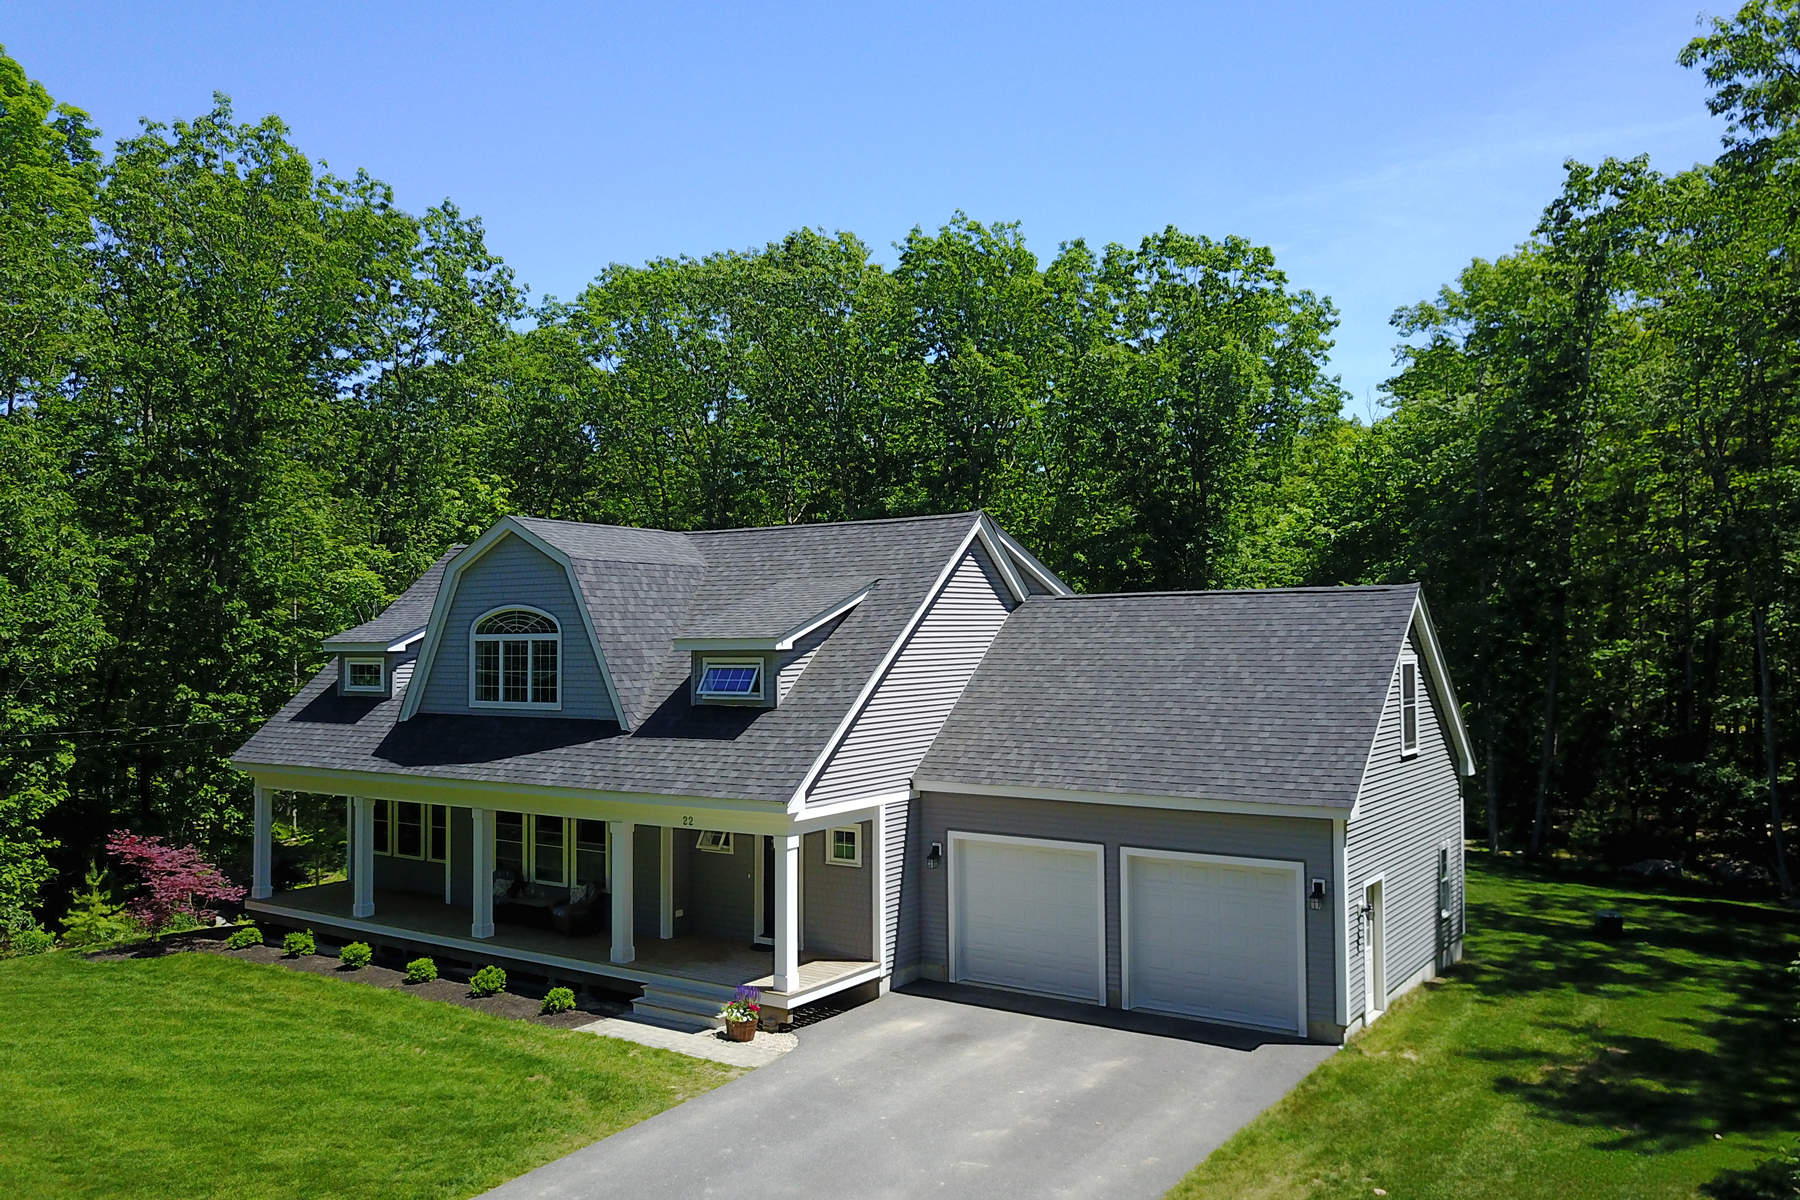 Single Family Home for Sale at Western Point Shingle-Style Home 22 Brave Boat Harbor Road York, Maine, 03909 United States